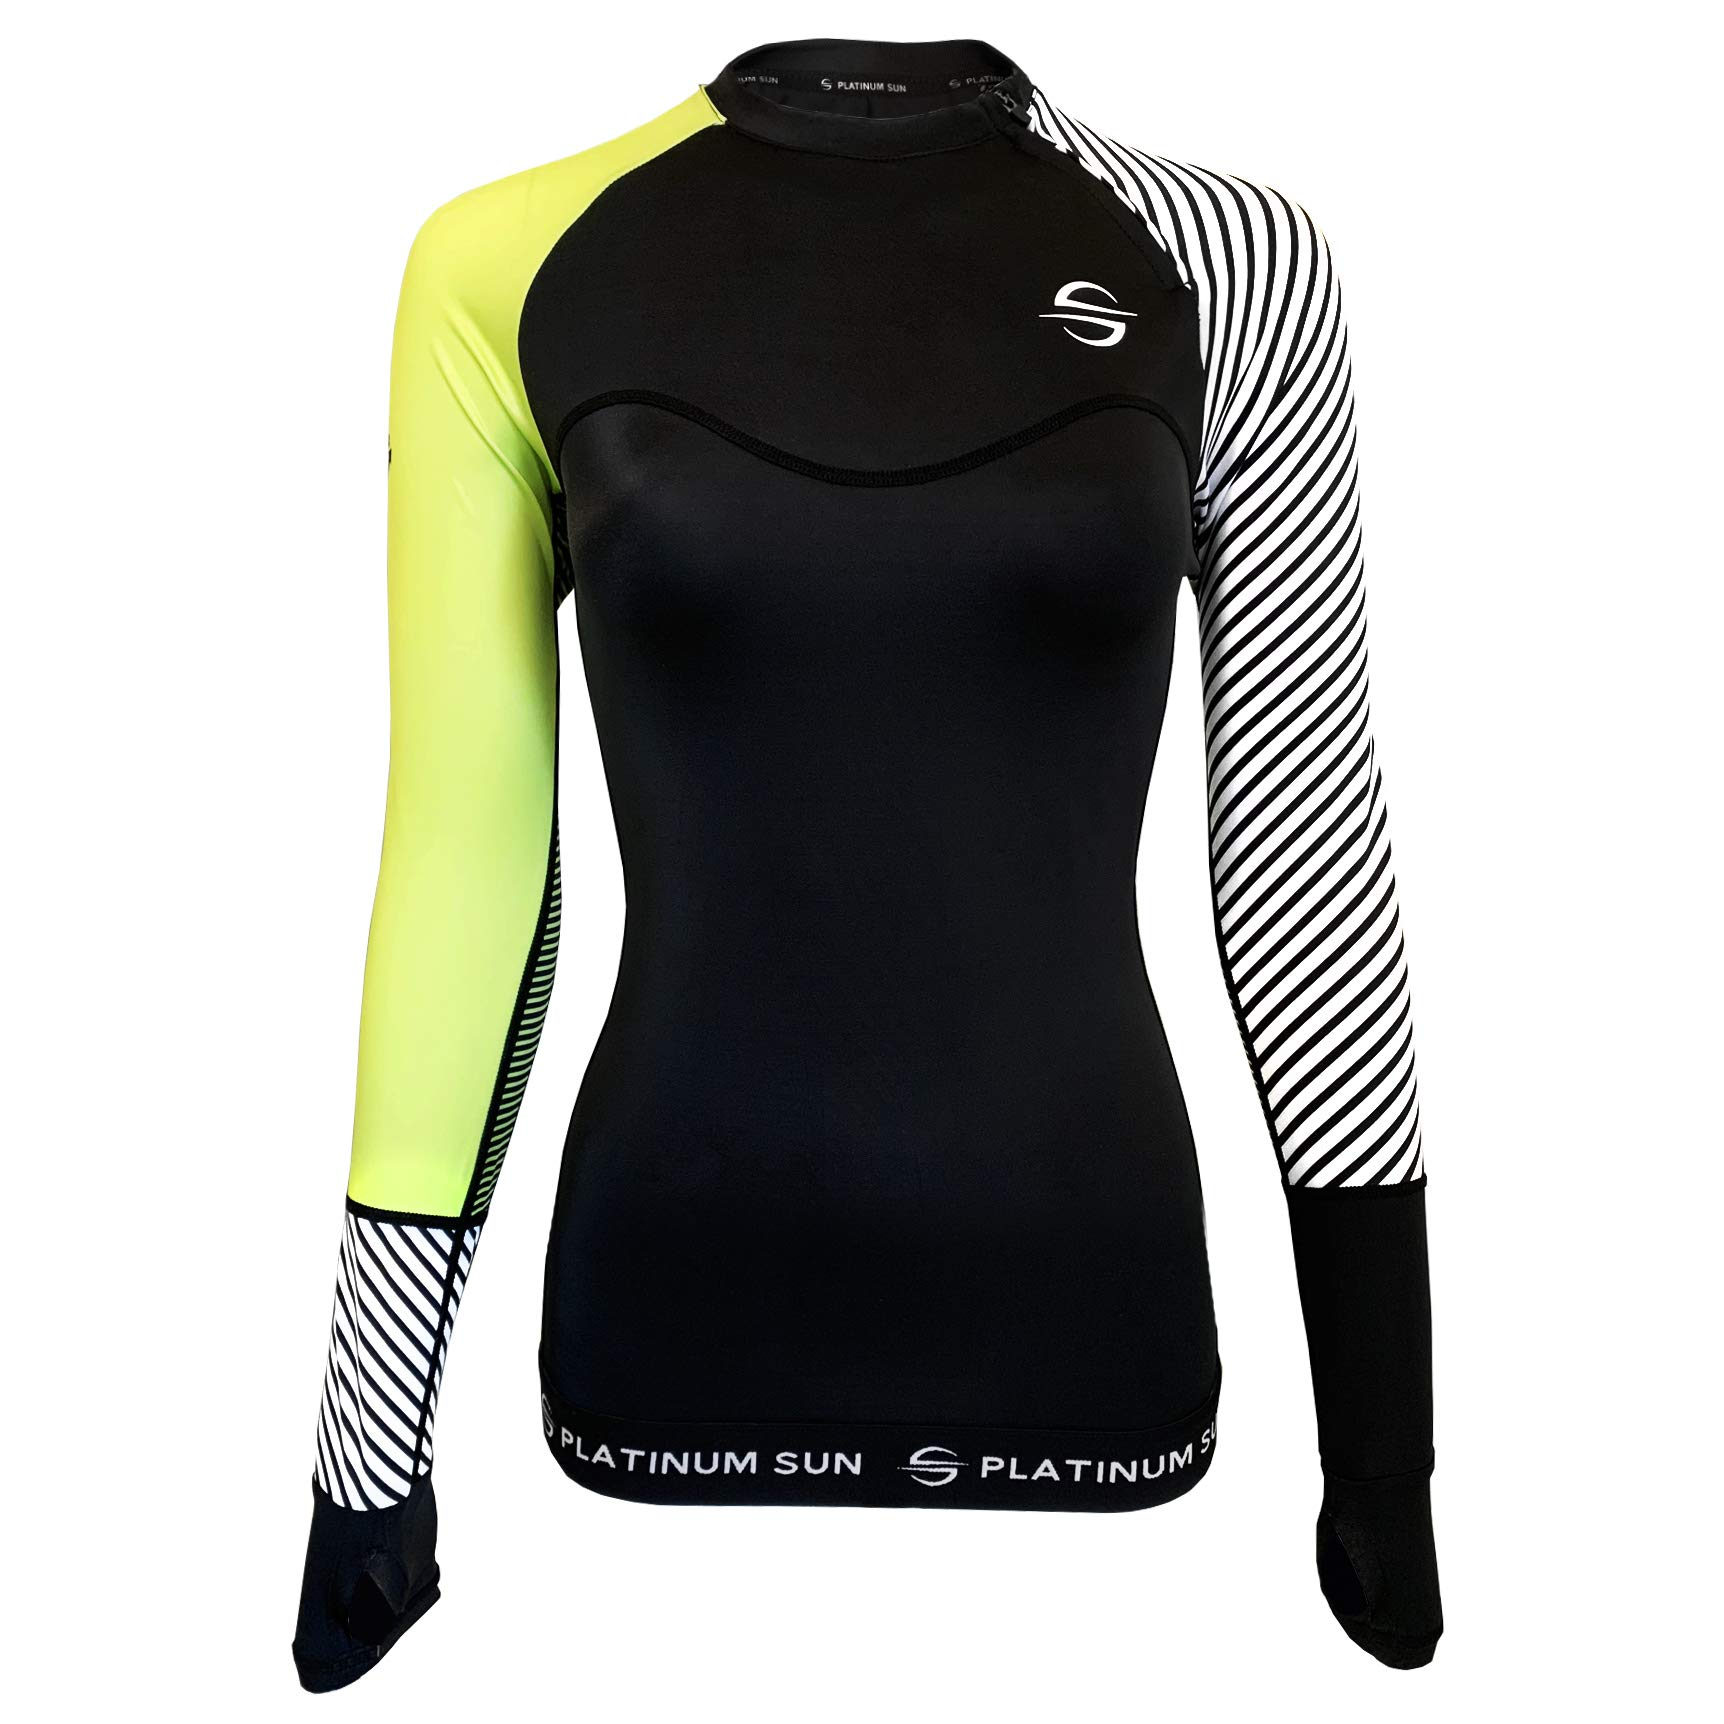 Women's Rash Guard Swim Shirt Long Sleeve Swimsuit Top Bathing Swimming Shirts - Sun Protection Clothing UPF 50+ (Green-Stripes, M) by Platinum Sun